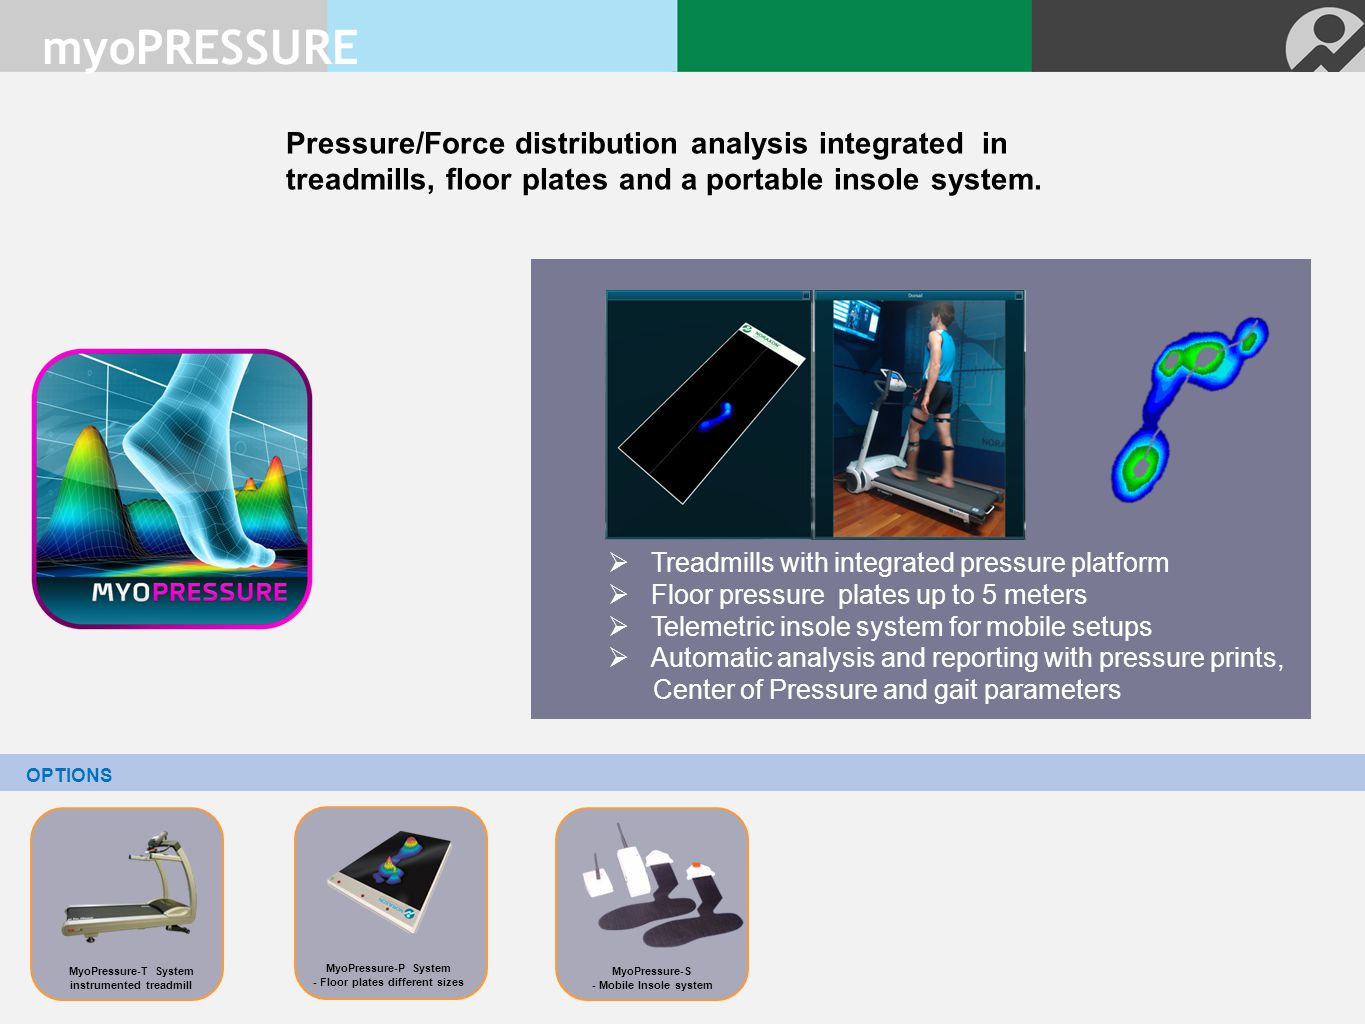 myoPRESSURE Pressure/Force distribution analysis integrated in treadmills, floor plates and a portable insole system.